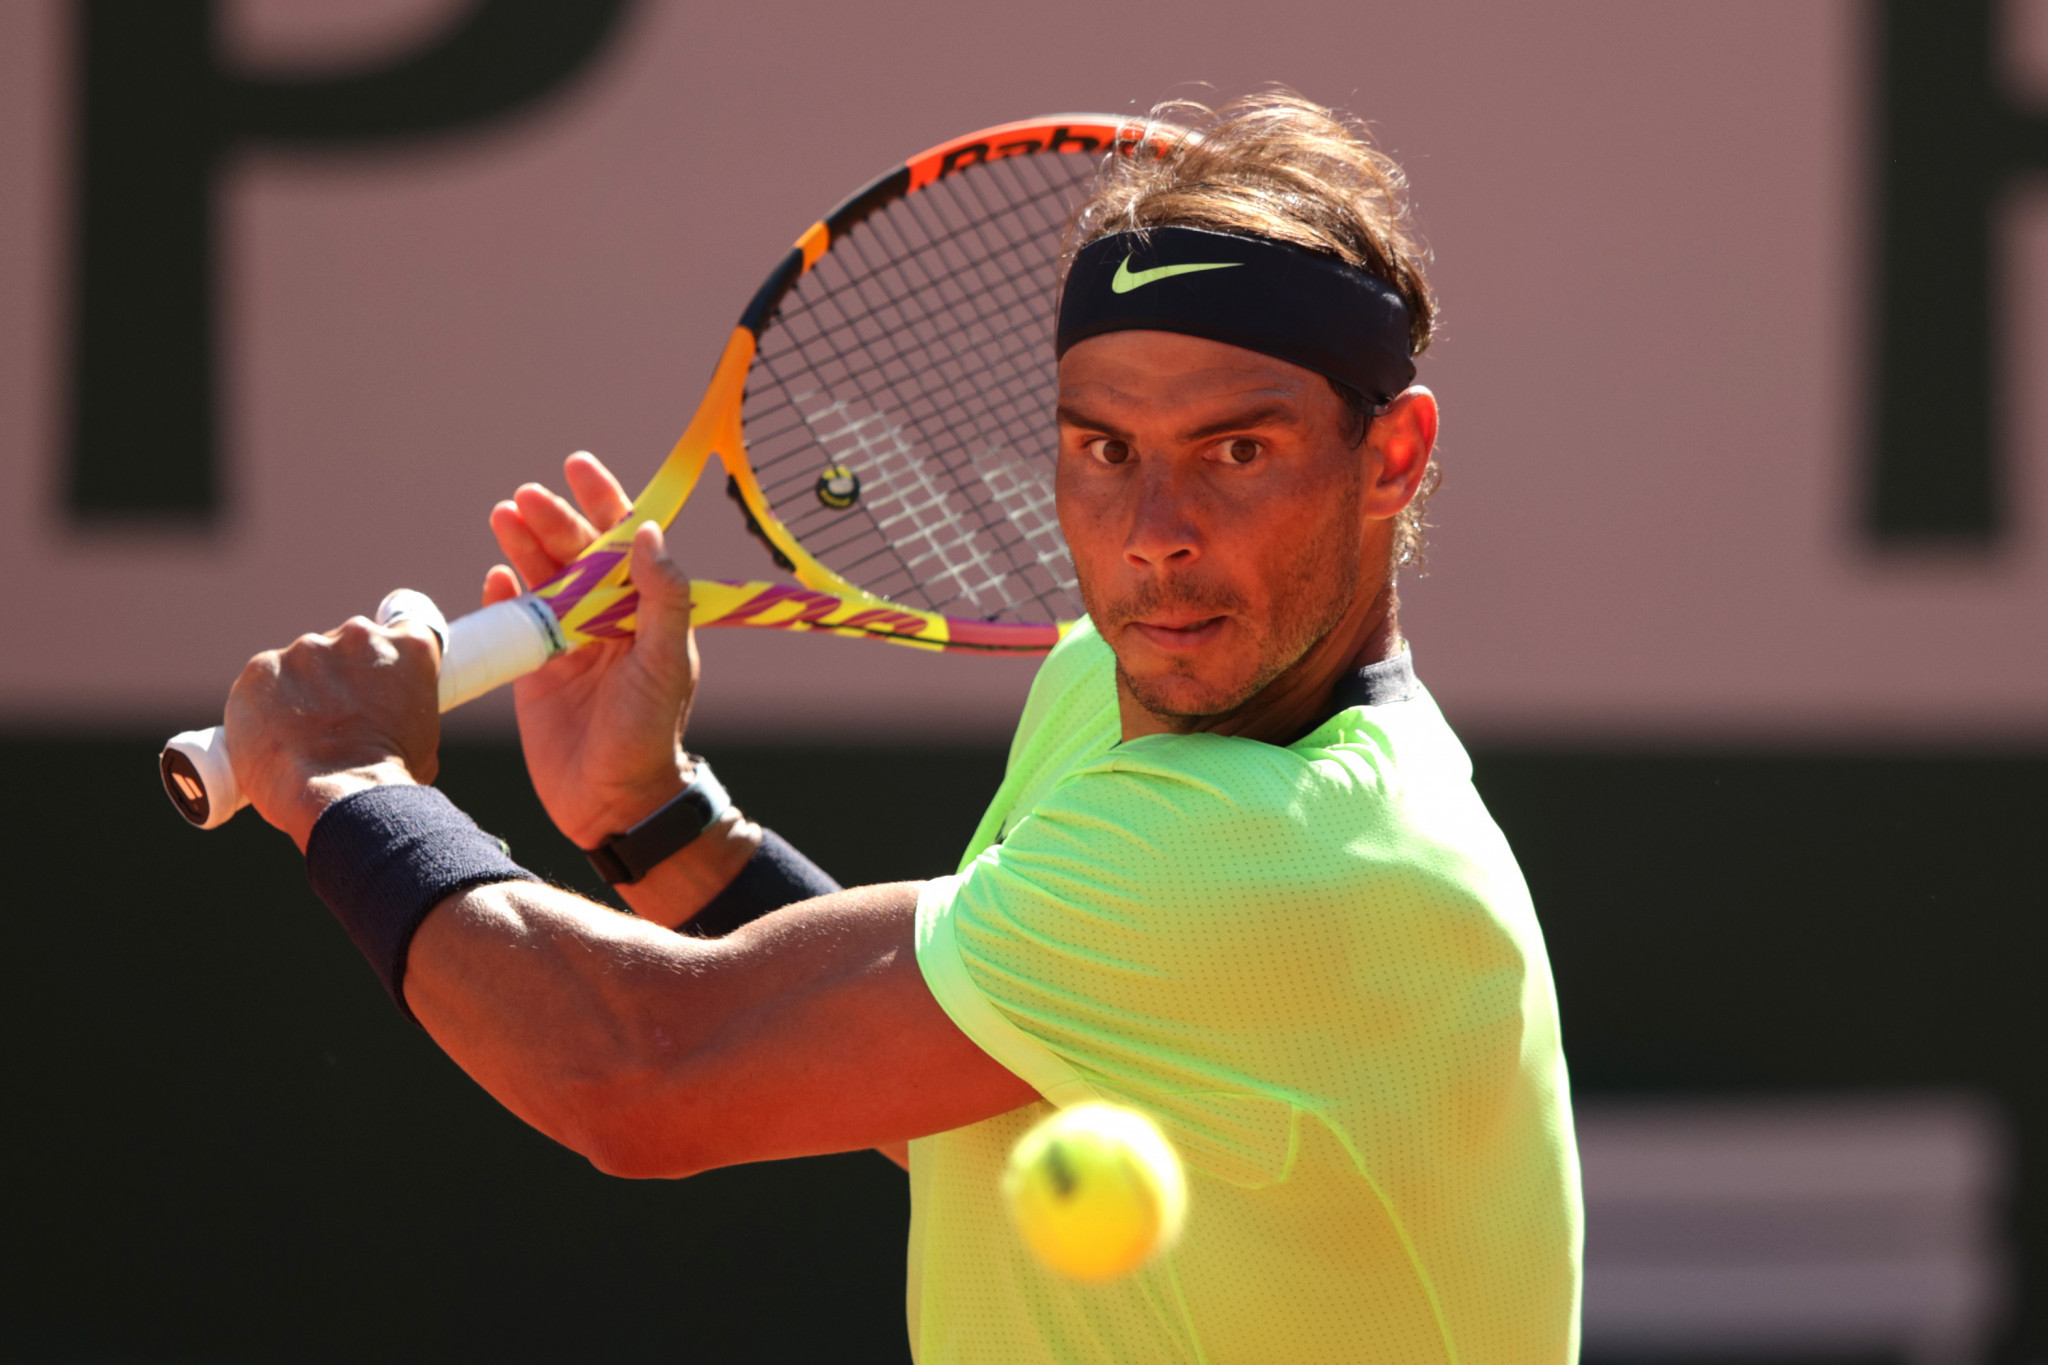 Defending champion Nadal eases through opening test at French Open